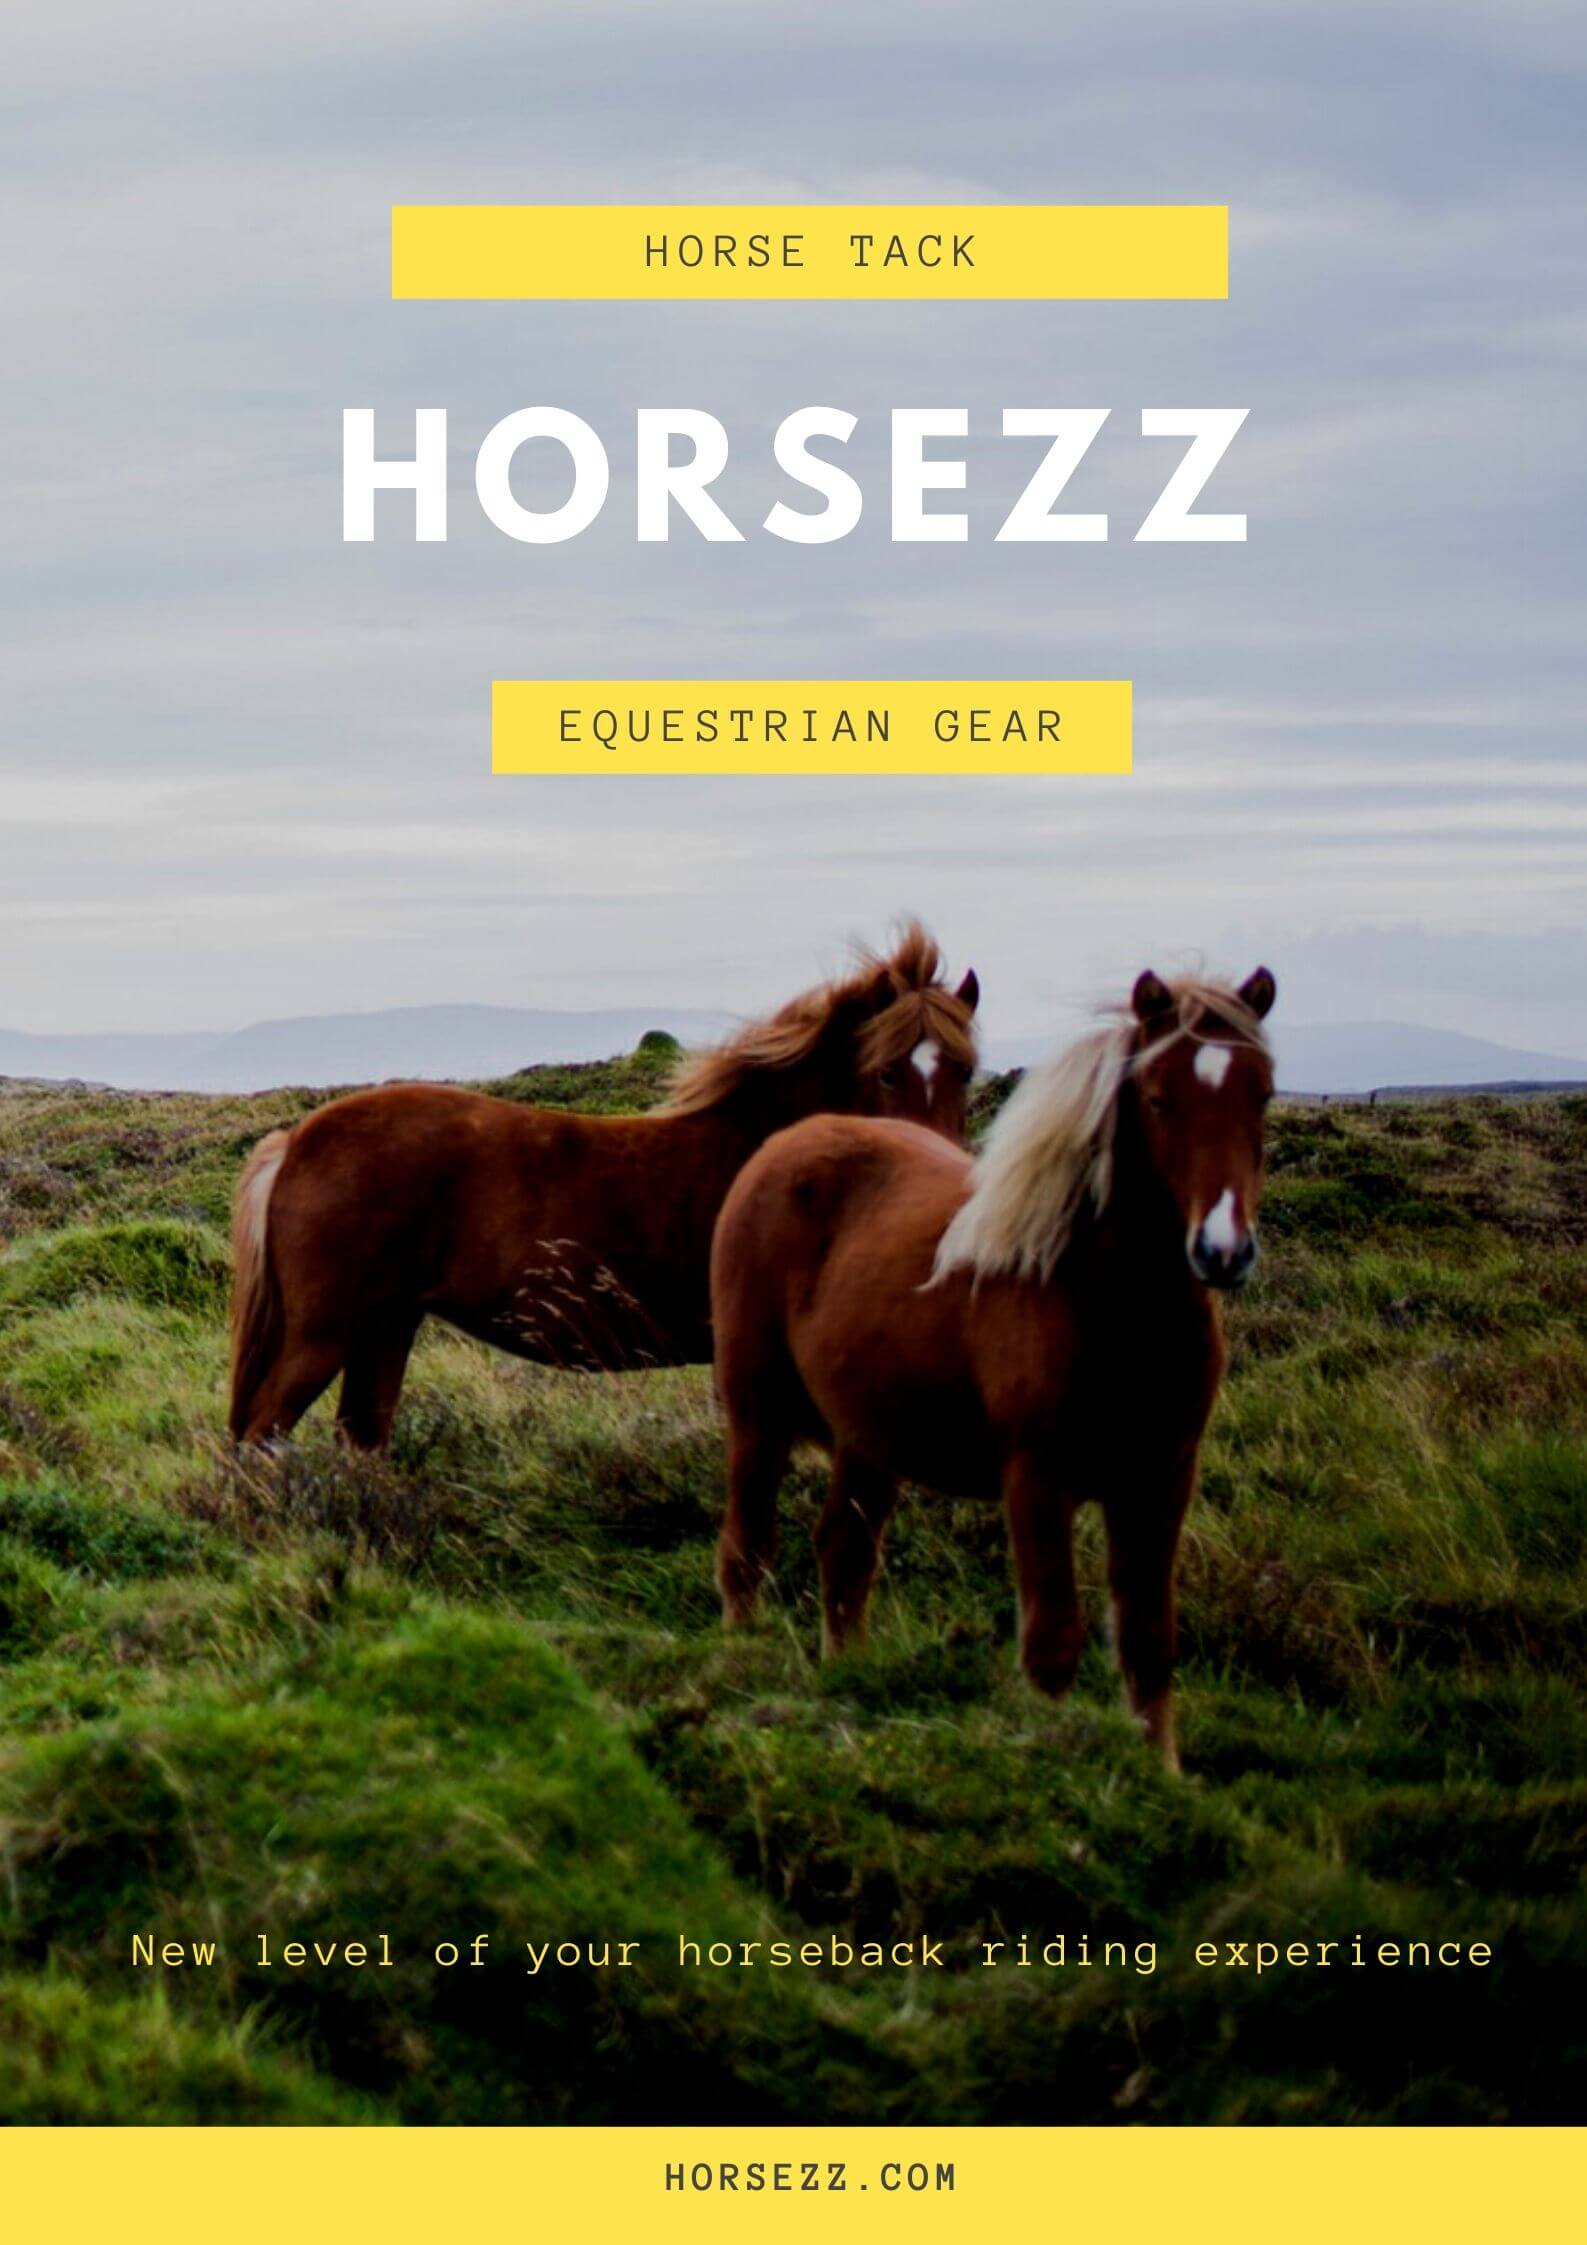 Horsezz - Horse tack and equestrian gear